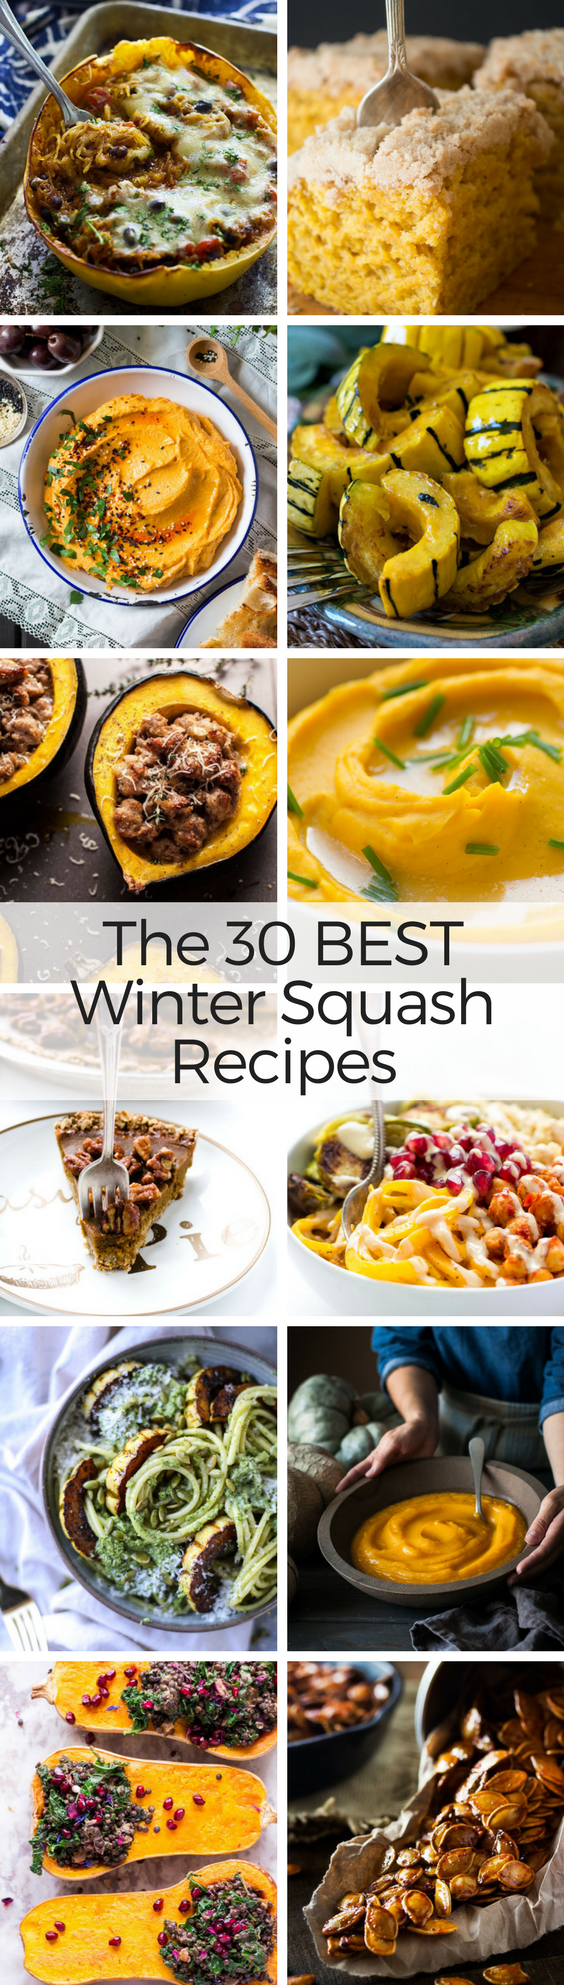 What to Eat Now: Winter Squash ~ there's a wonderland of winter squash out there, and it turns out the good eating goes way beyond pumpkin pie. So let's get all those gorgeous gourds out of the tacky fall displays and into our kitchens, where they belong ~ here are the 30 best winter squash recipes for butternut, acorn, kabocha, hubbard, pumpkin and more! #fall #squash #wintersquash #butternut #acorn #pumpkin #hubbard #delicata #spaghettisquash